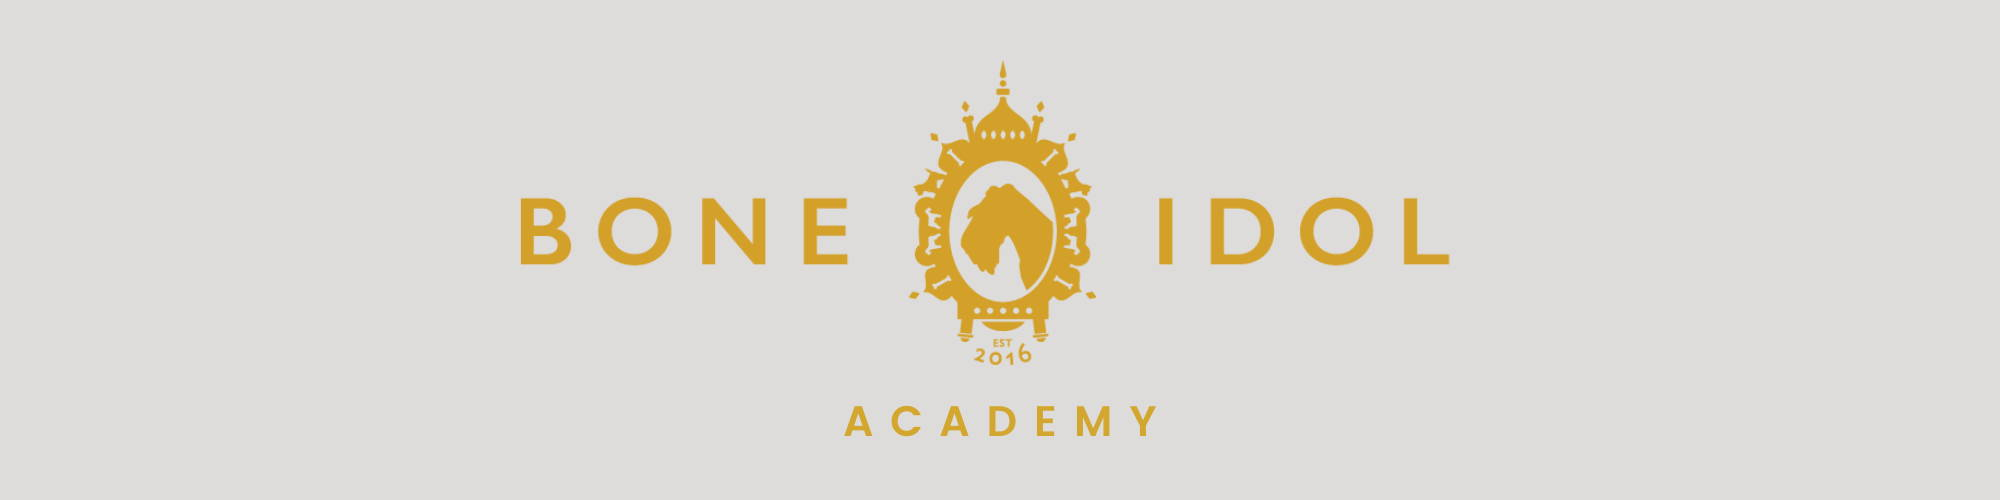 Bone Idol Academy, Dog Grooming Qualification, How to become a dog groomer,  dog grooming course, dog Grooming training Sussex, Brighton & Hove